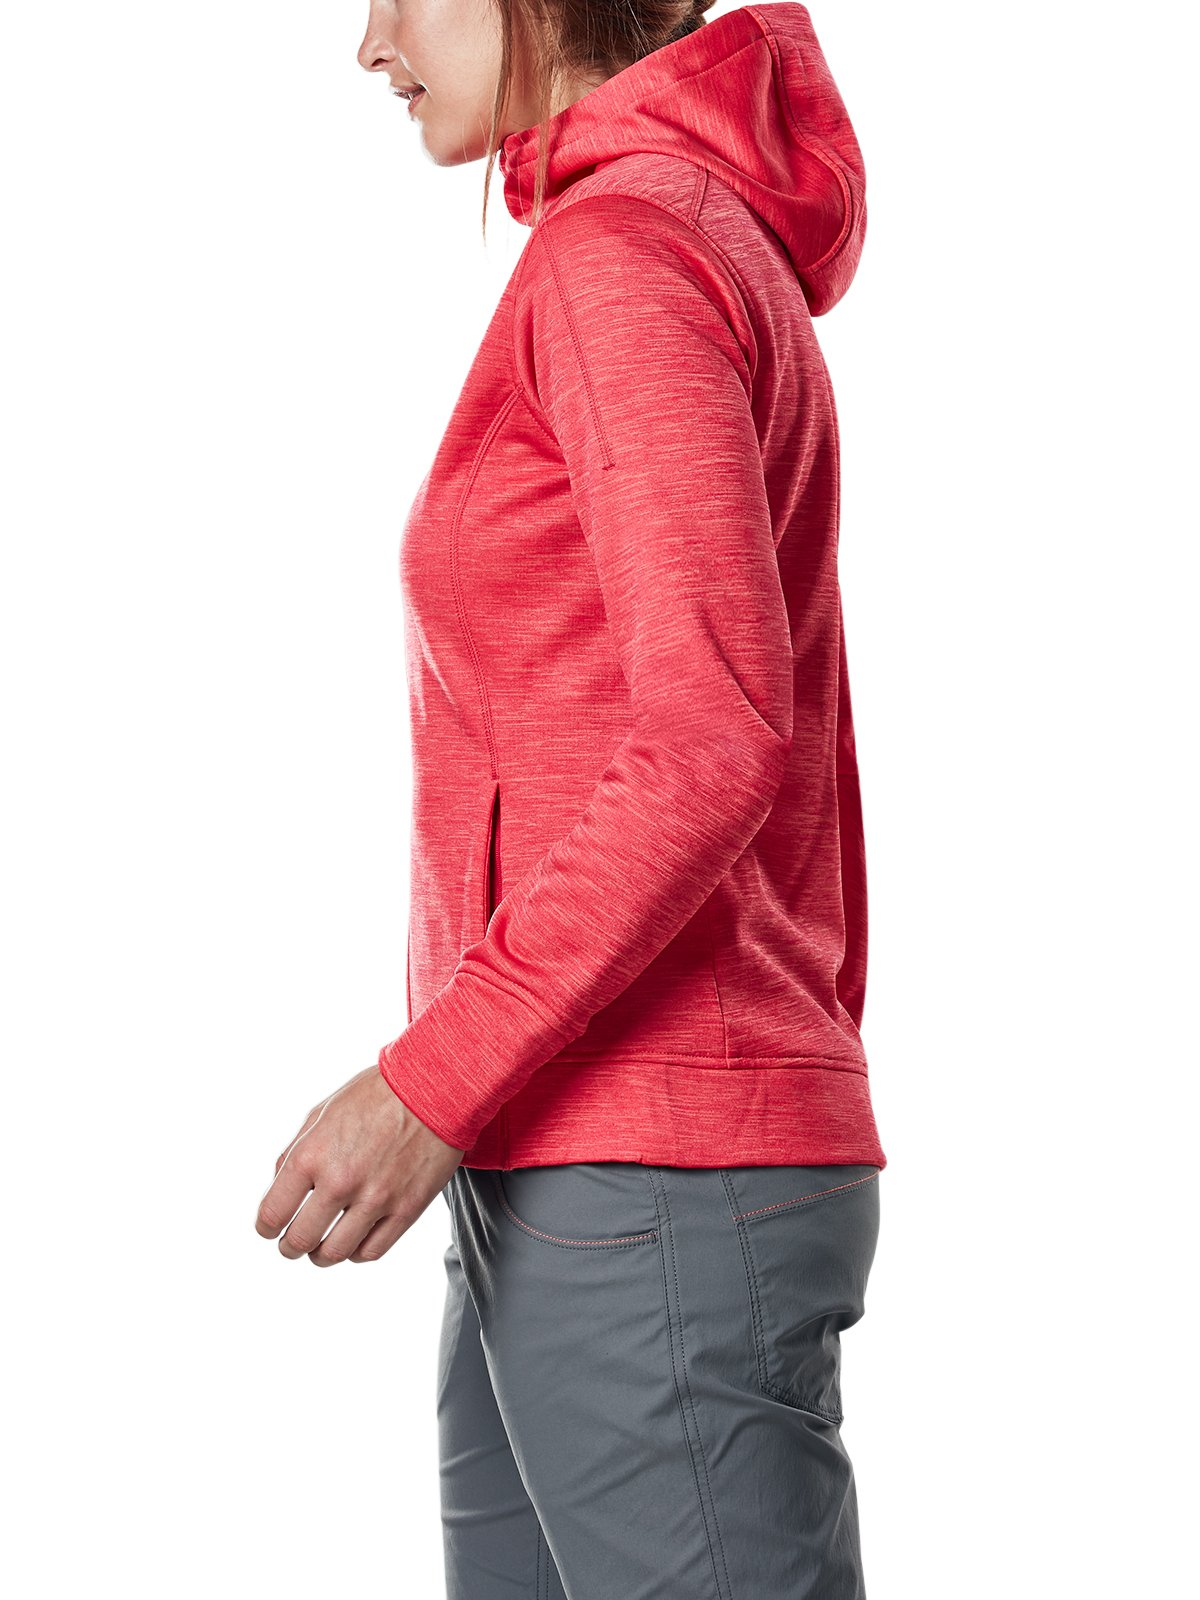 71DdwDaHvUL - Berghaus Women's Kamloops Full Zip Fleece Jacket